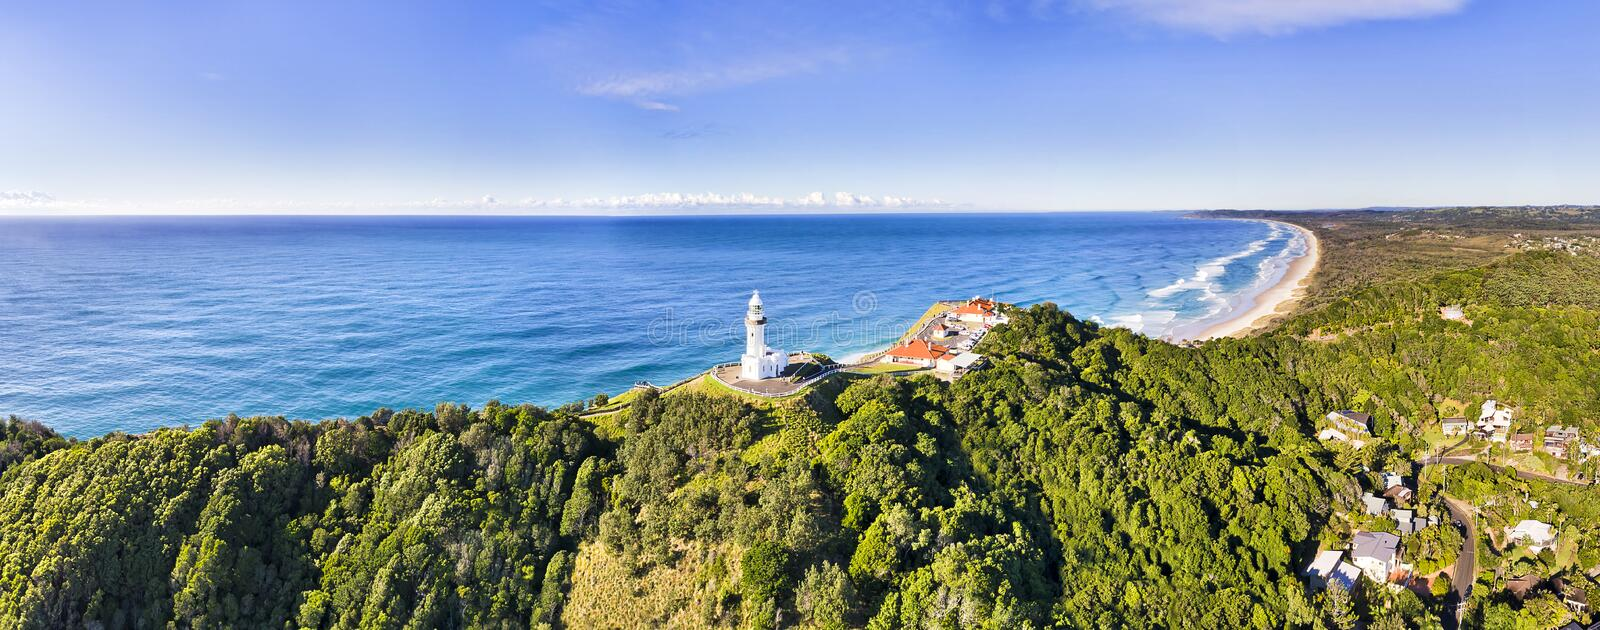 D Byron Bay LIghthouse short top pan. Sandstone headland hill range at the tip near Byron Bay town with wHite stone Byron Bay lighthouse on the top in wide stock photography